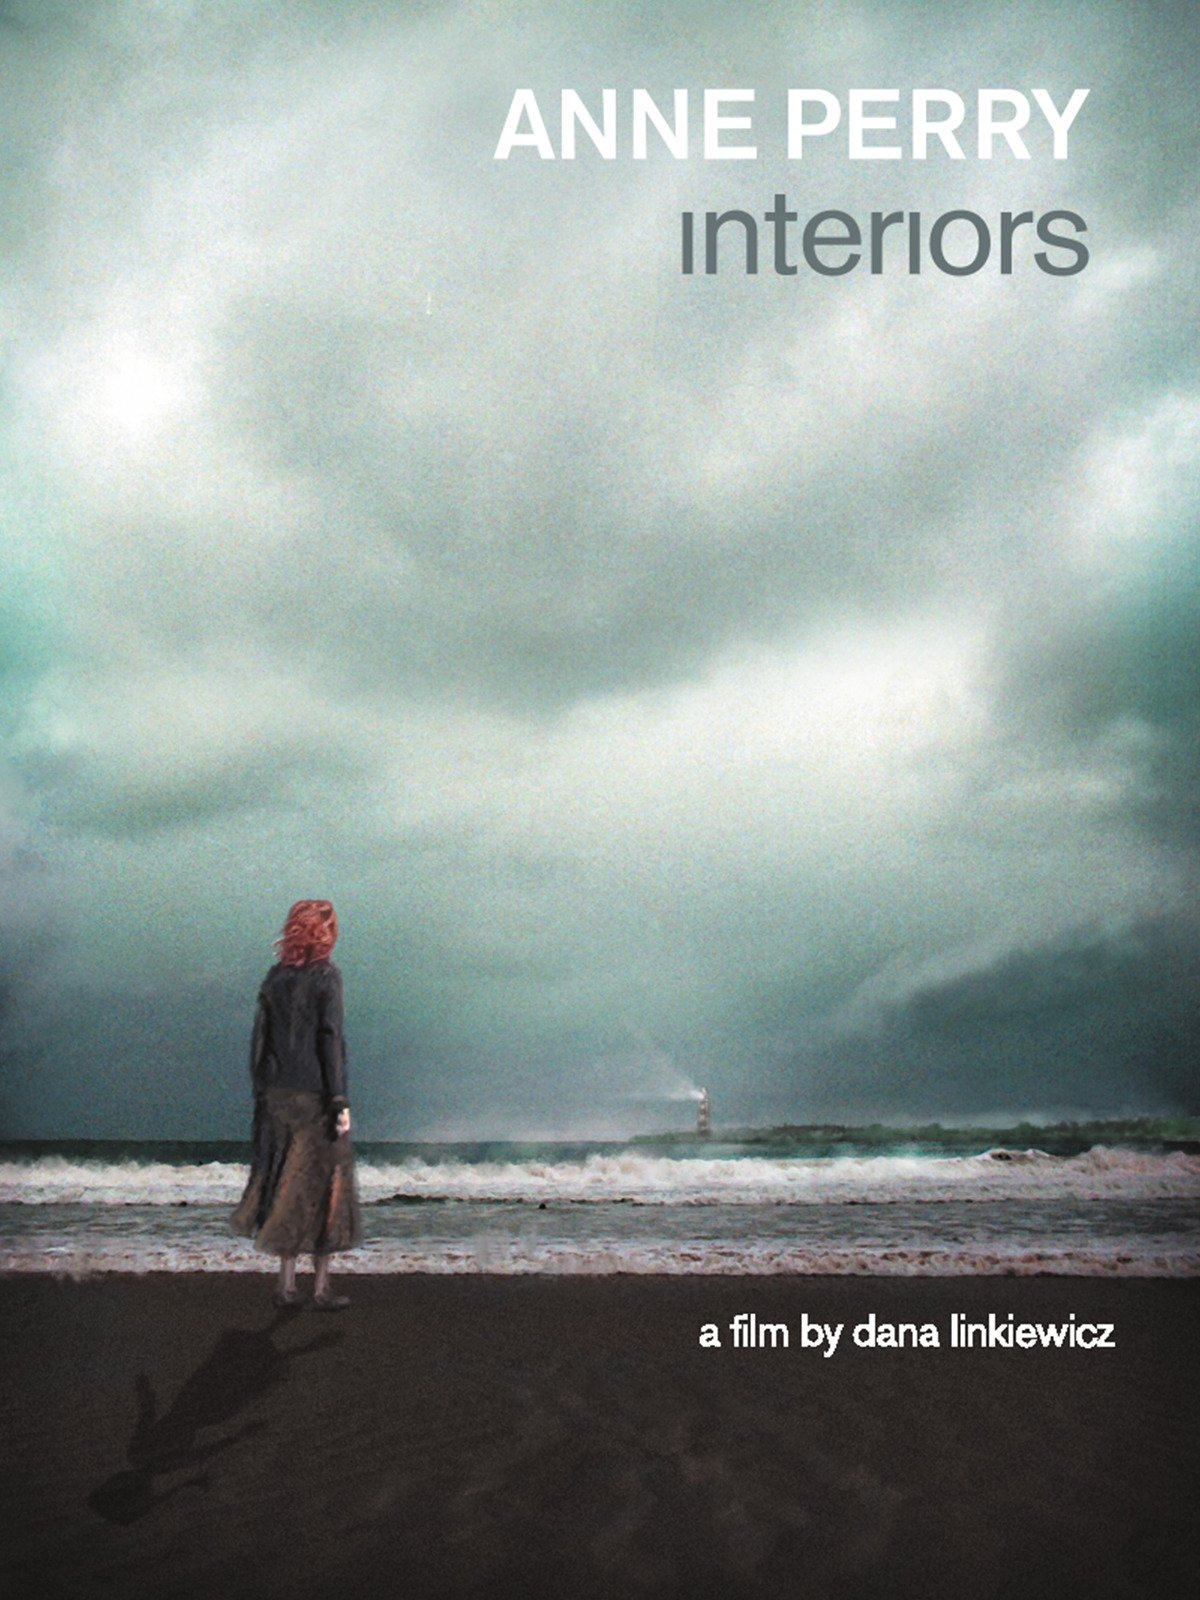 Amazon co uk: Watch Anne Perry: Interiors | Prime Video